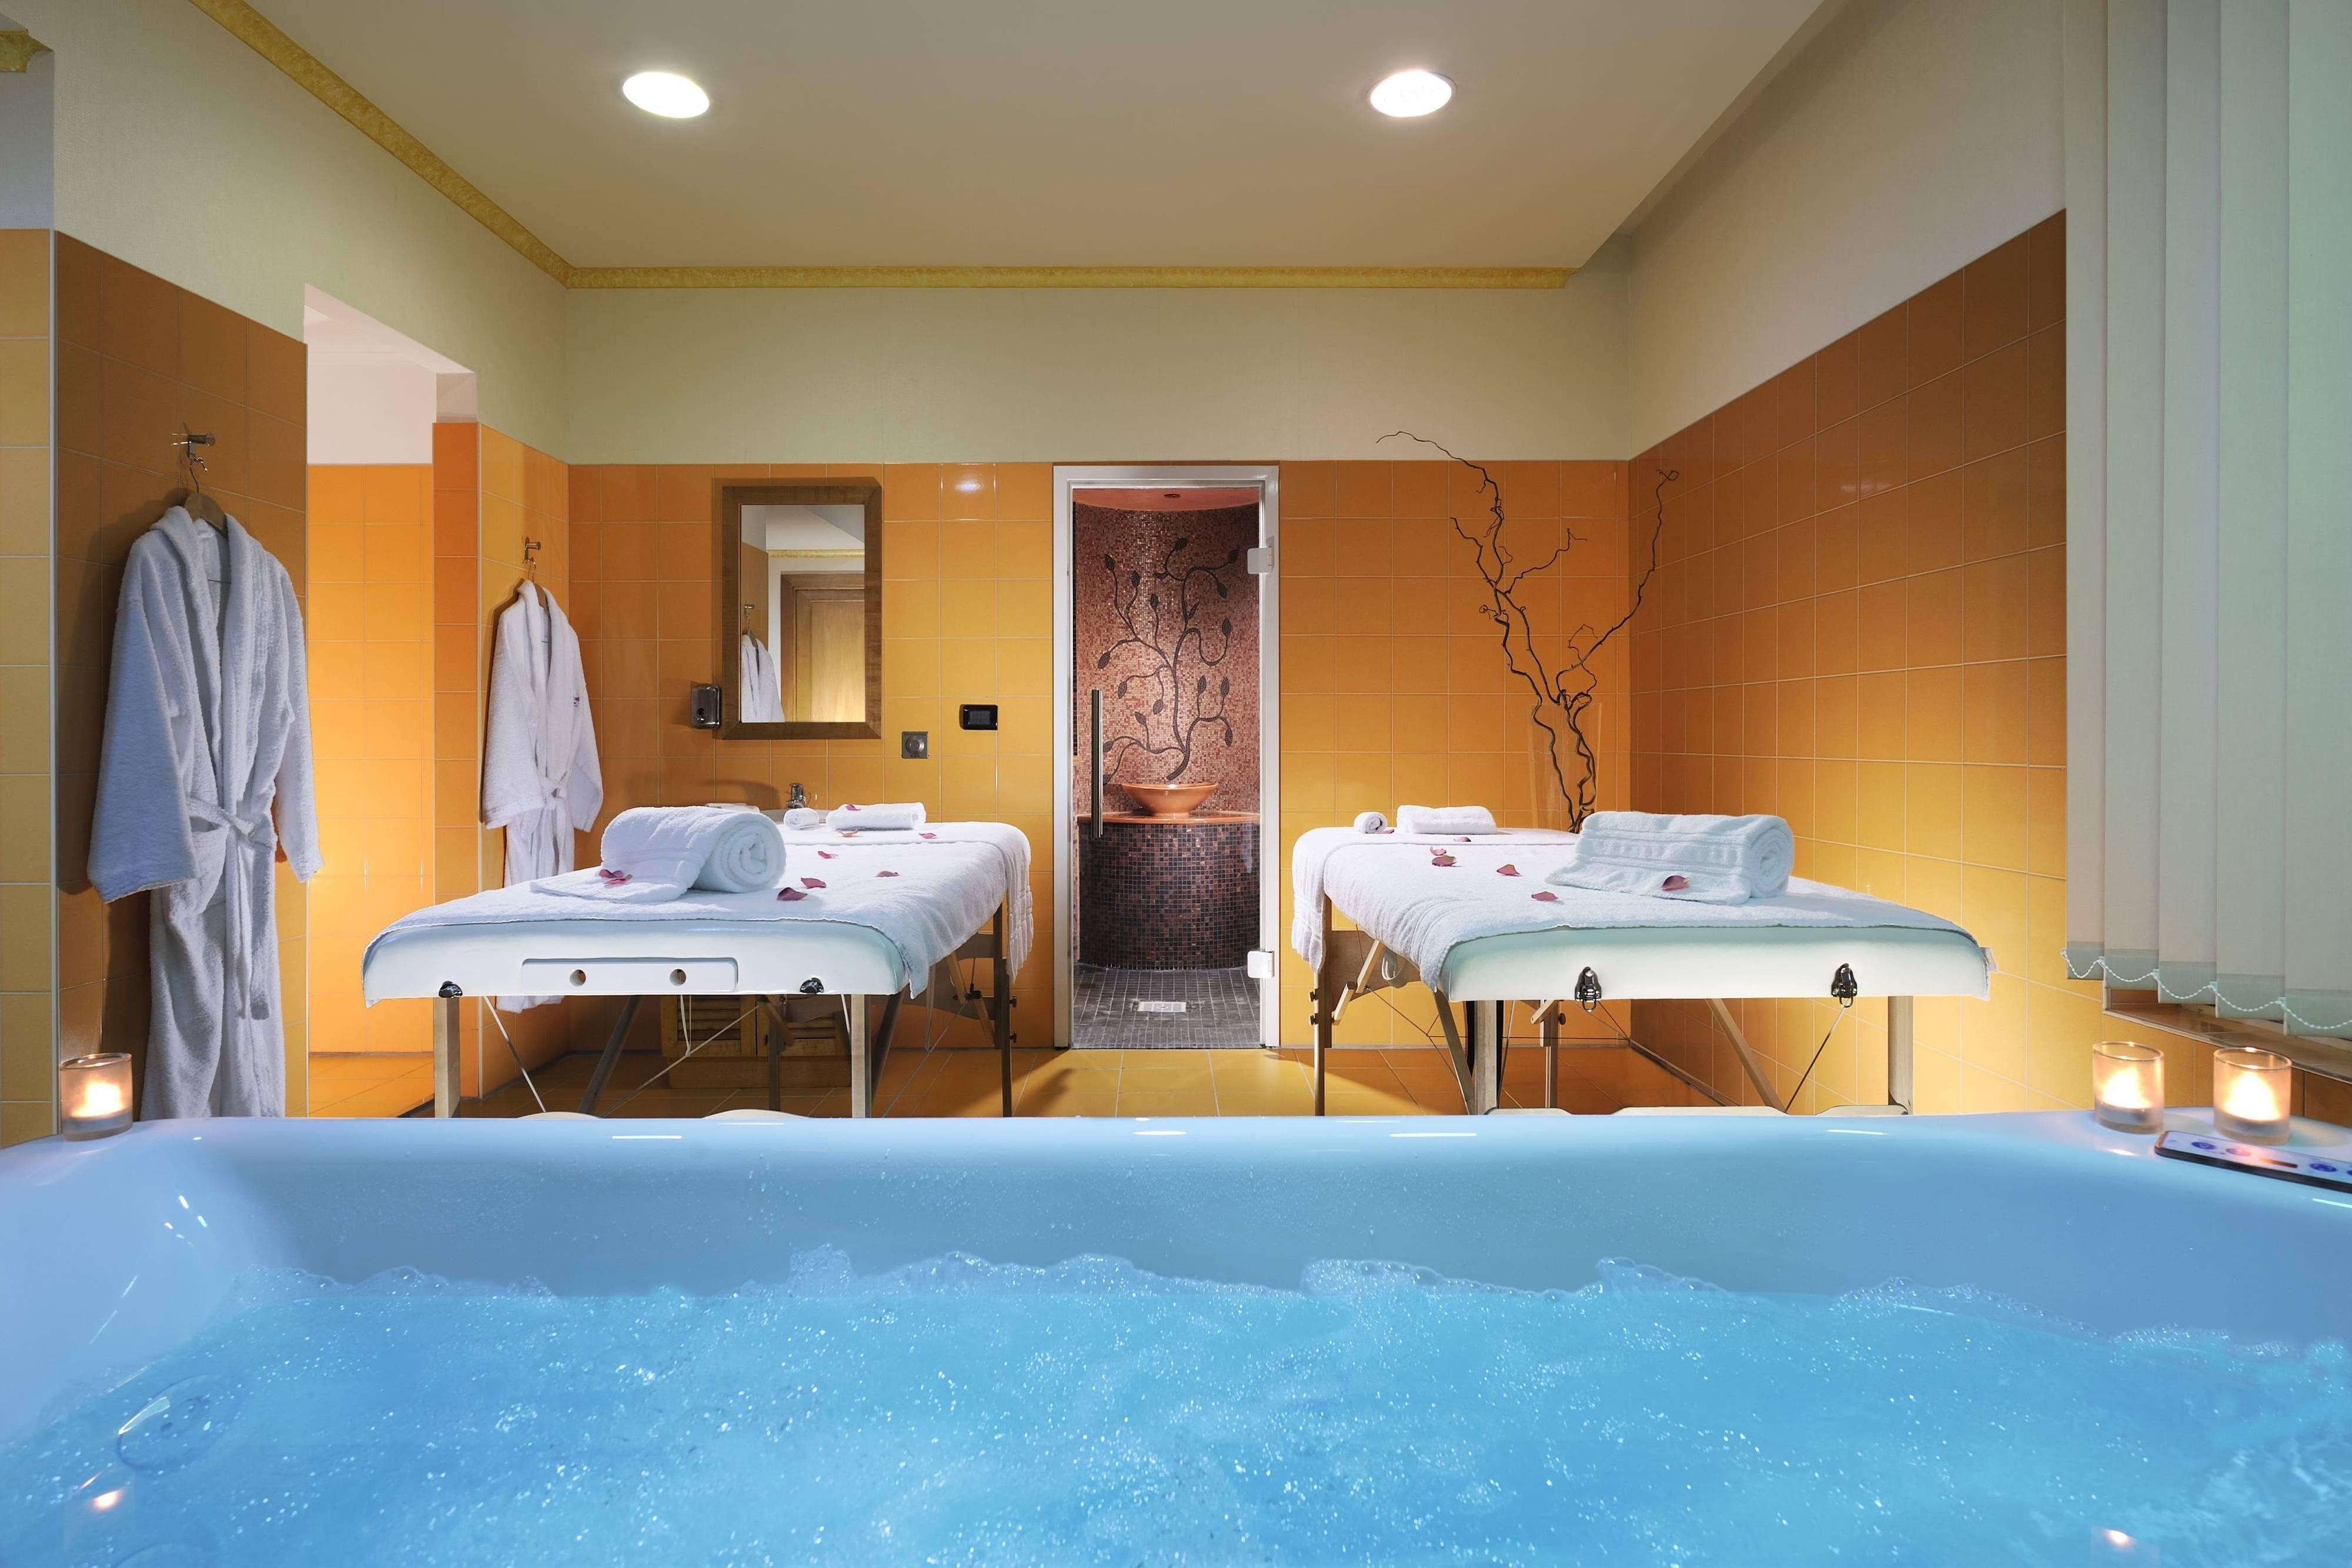 Hotel near Rome spa facilities